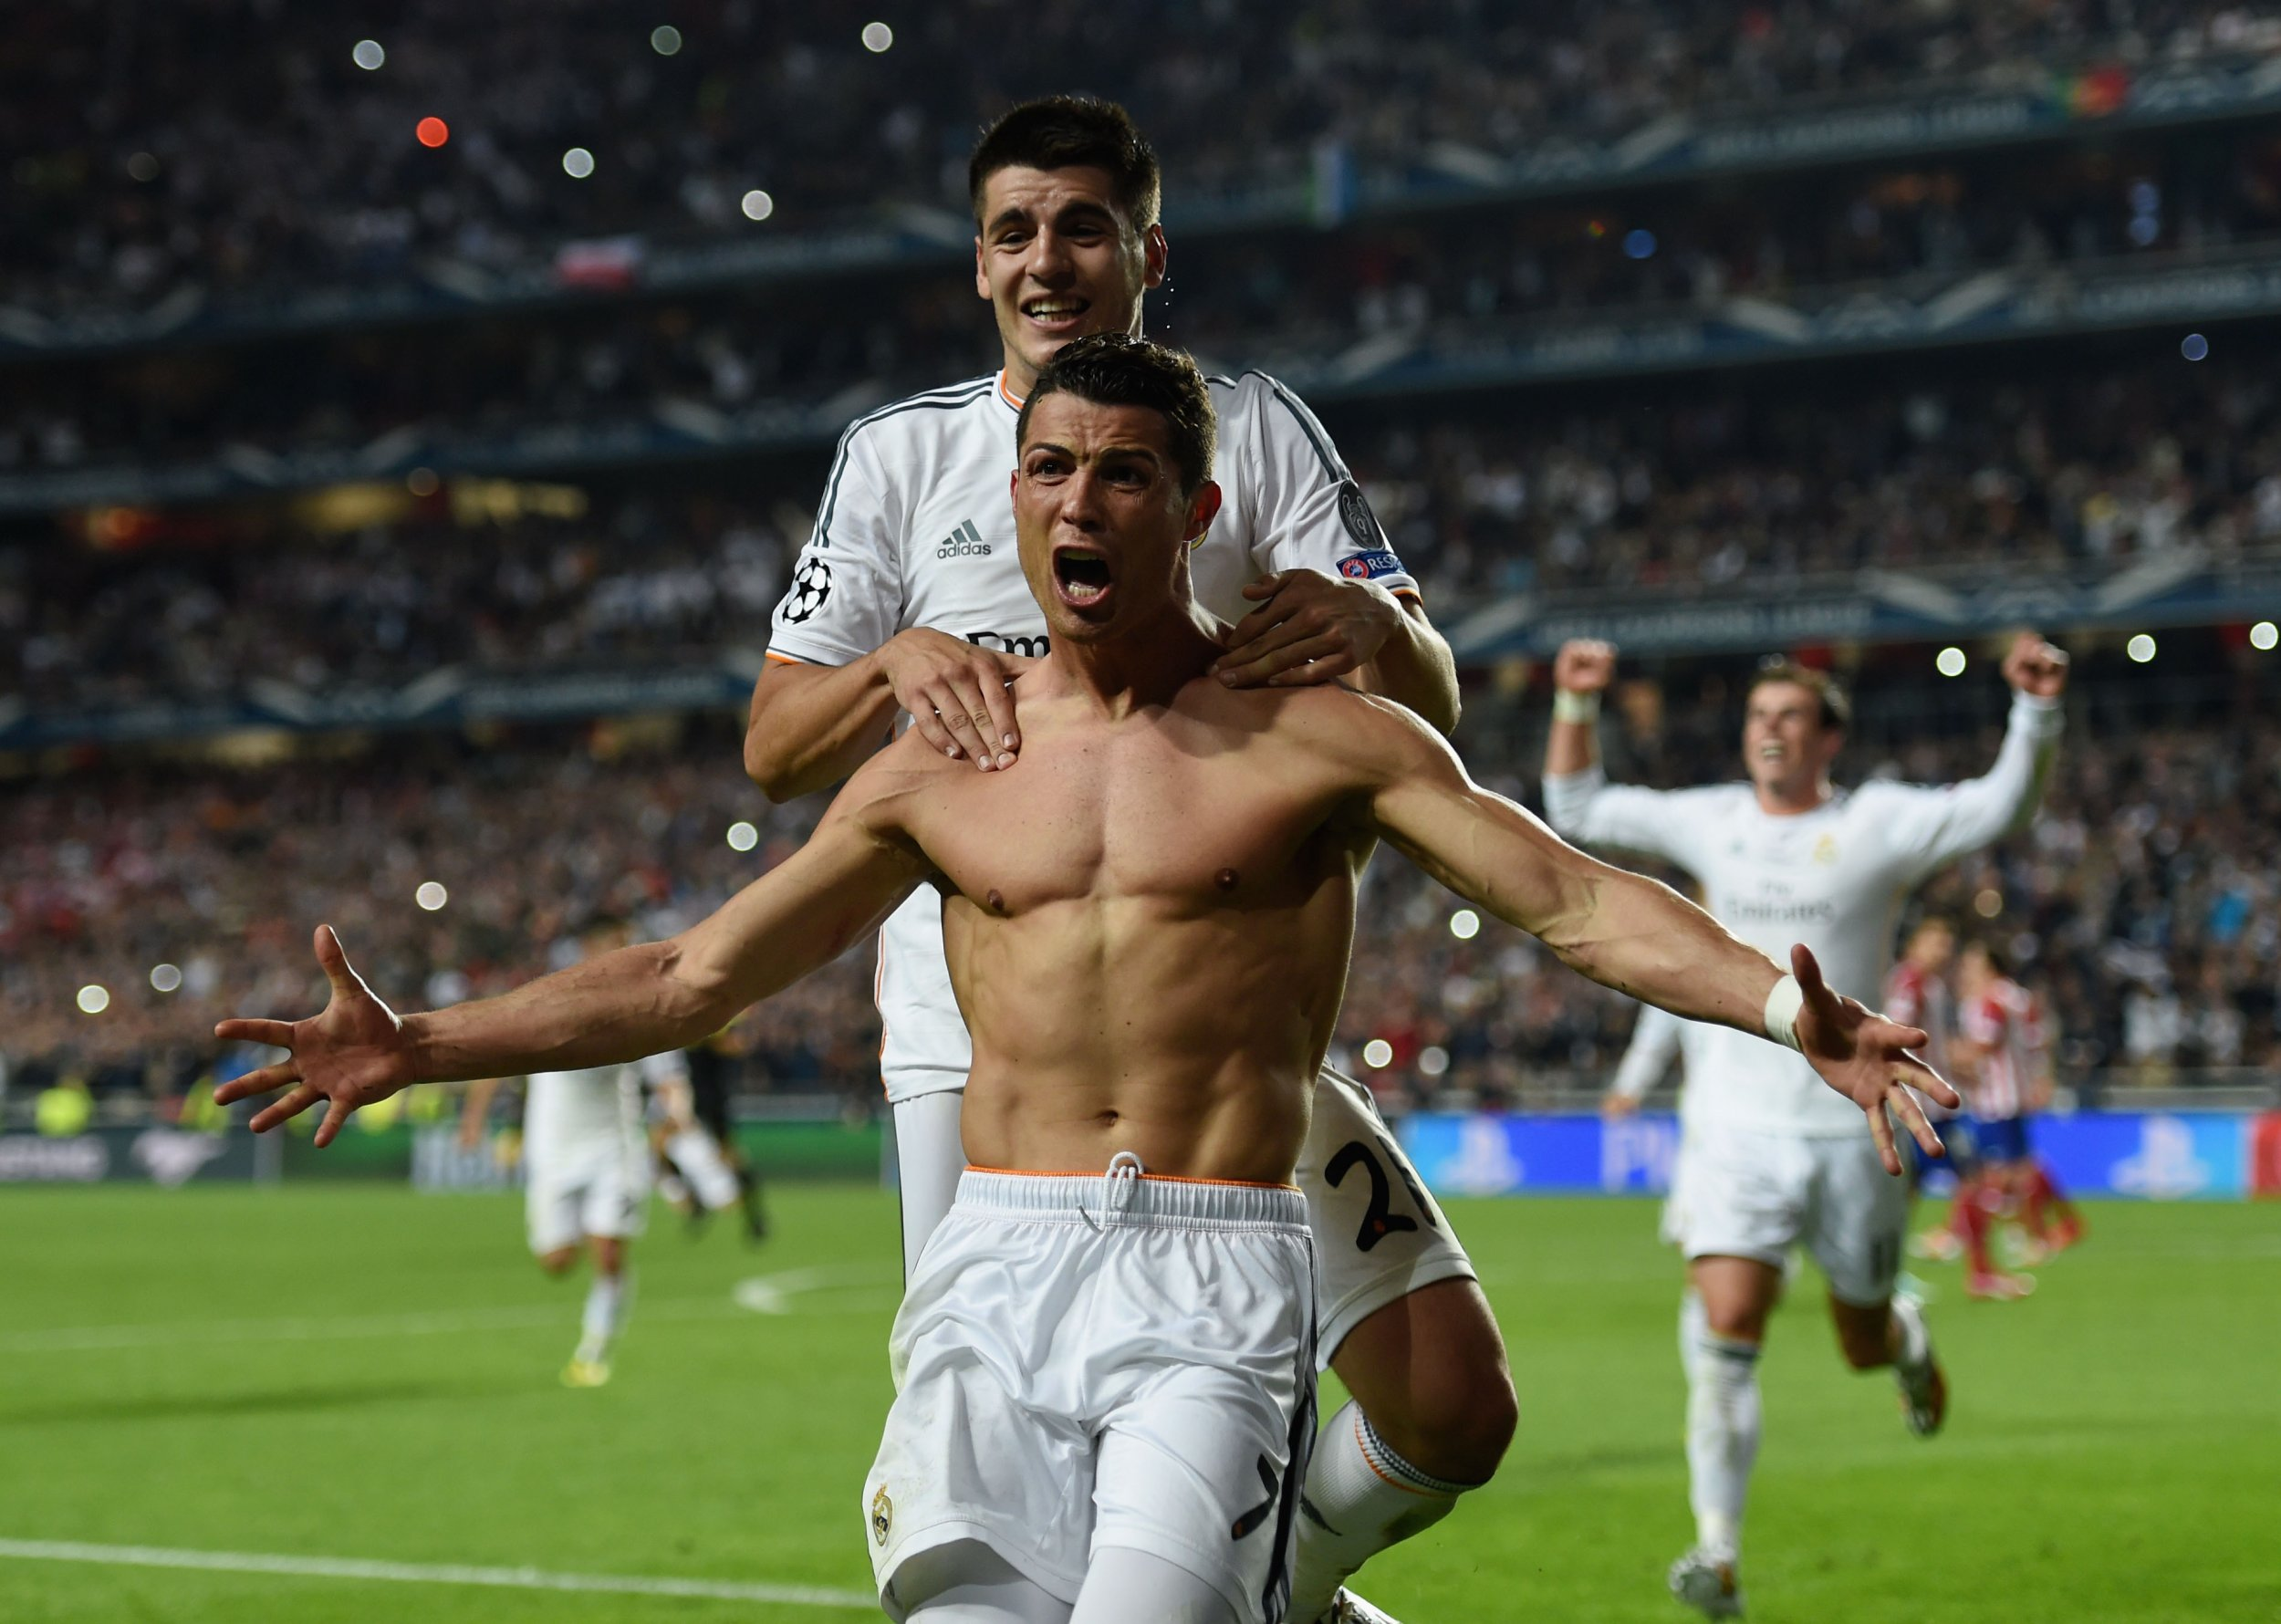 Cristiano Ronaldo's body is idolized by a generation of young men.